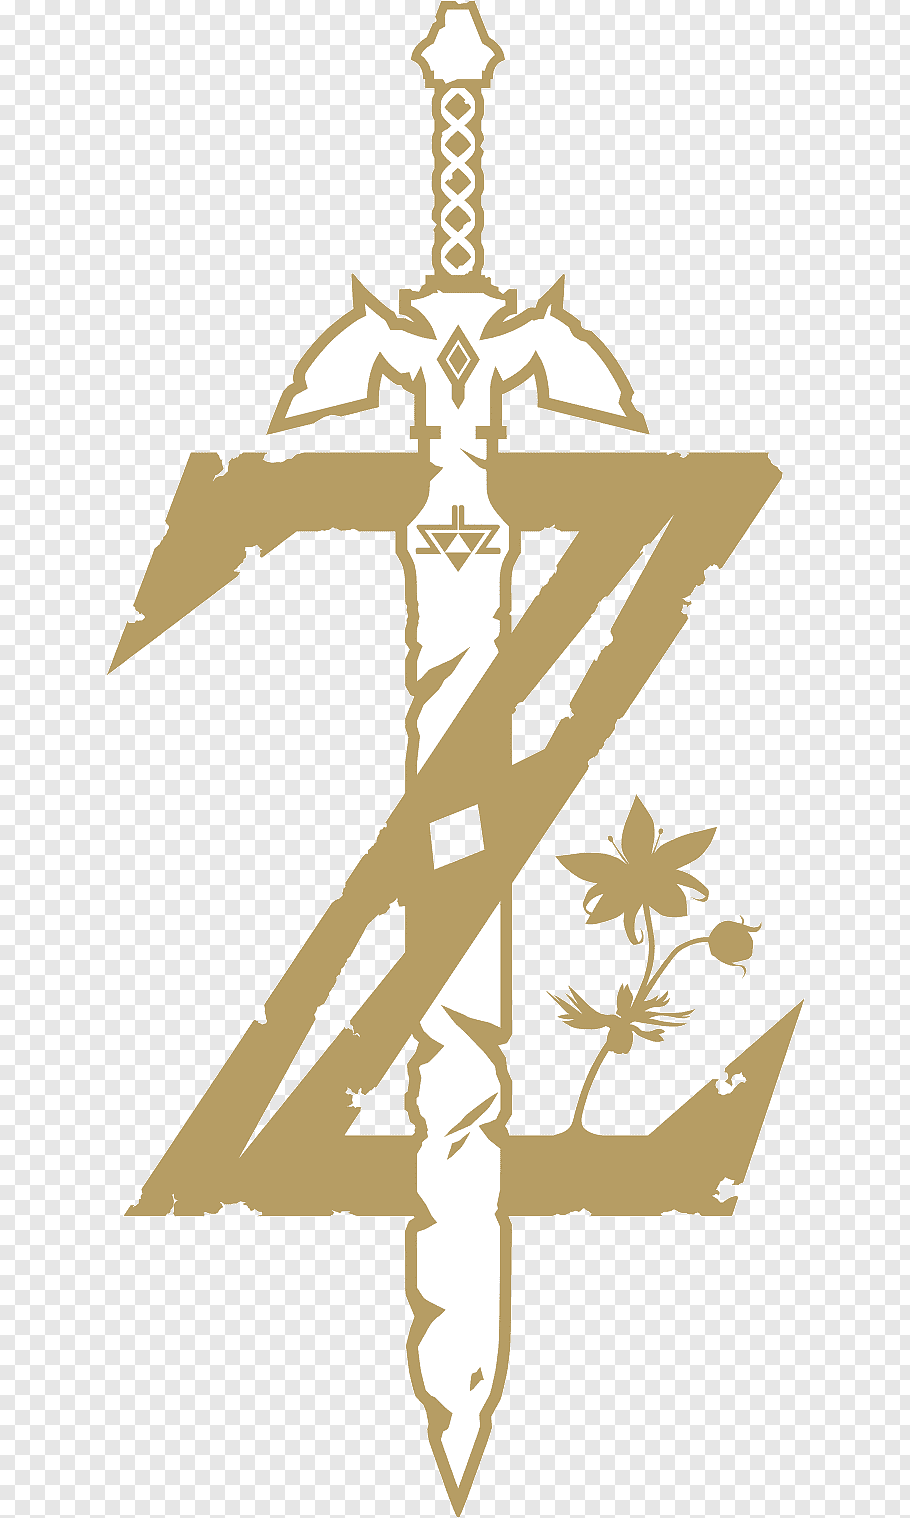 Brown and white The Legend of Zelda Z logo with sword.